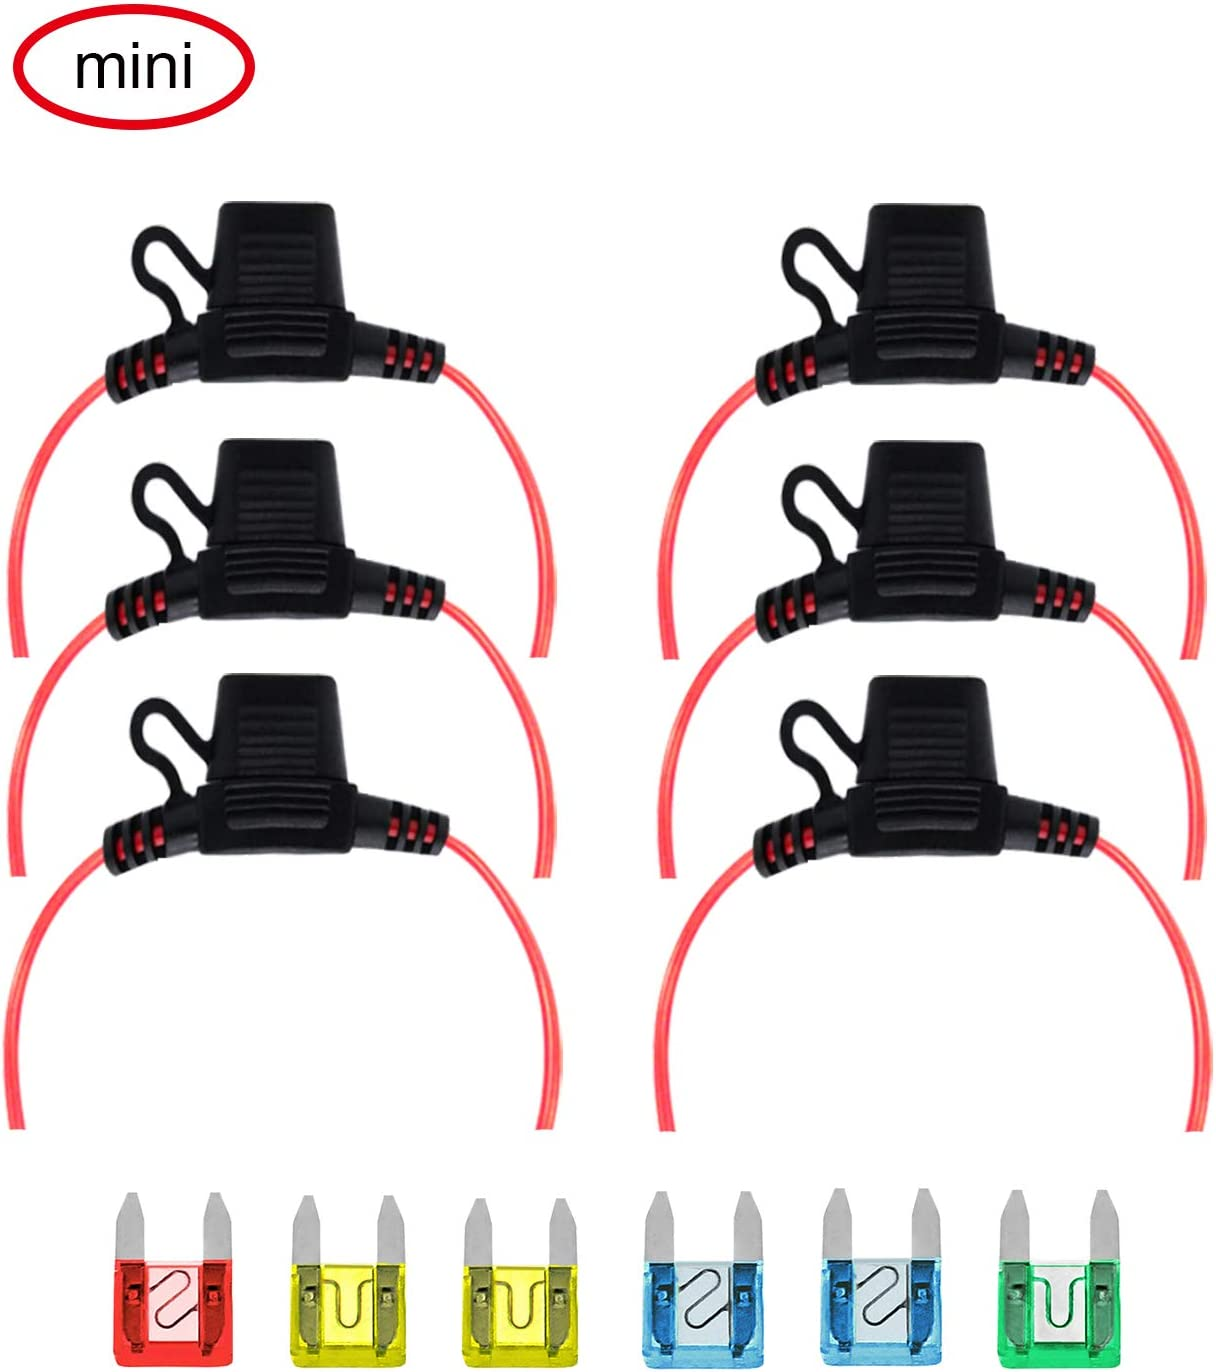 15A VANTRONIK IP65 Waterproof Inline Standard Car Blade Fuse Holder with 14 AWG Gauge Wire 30 cm for ATO//ATC Standard Size Auto Blade Fuse 6 Pack and 10A 20A 30A Standard Fuse 25A